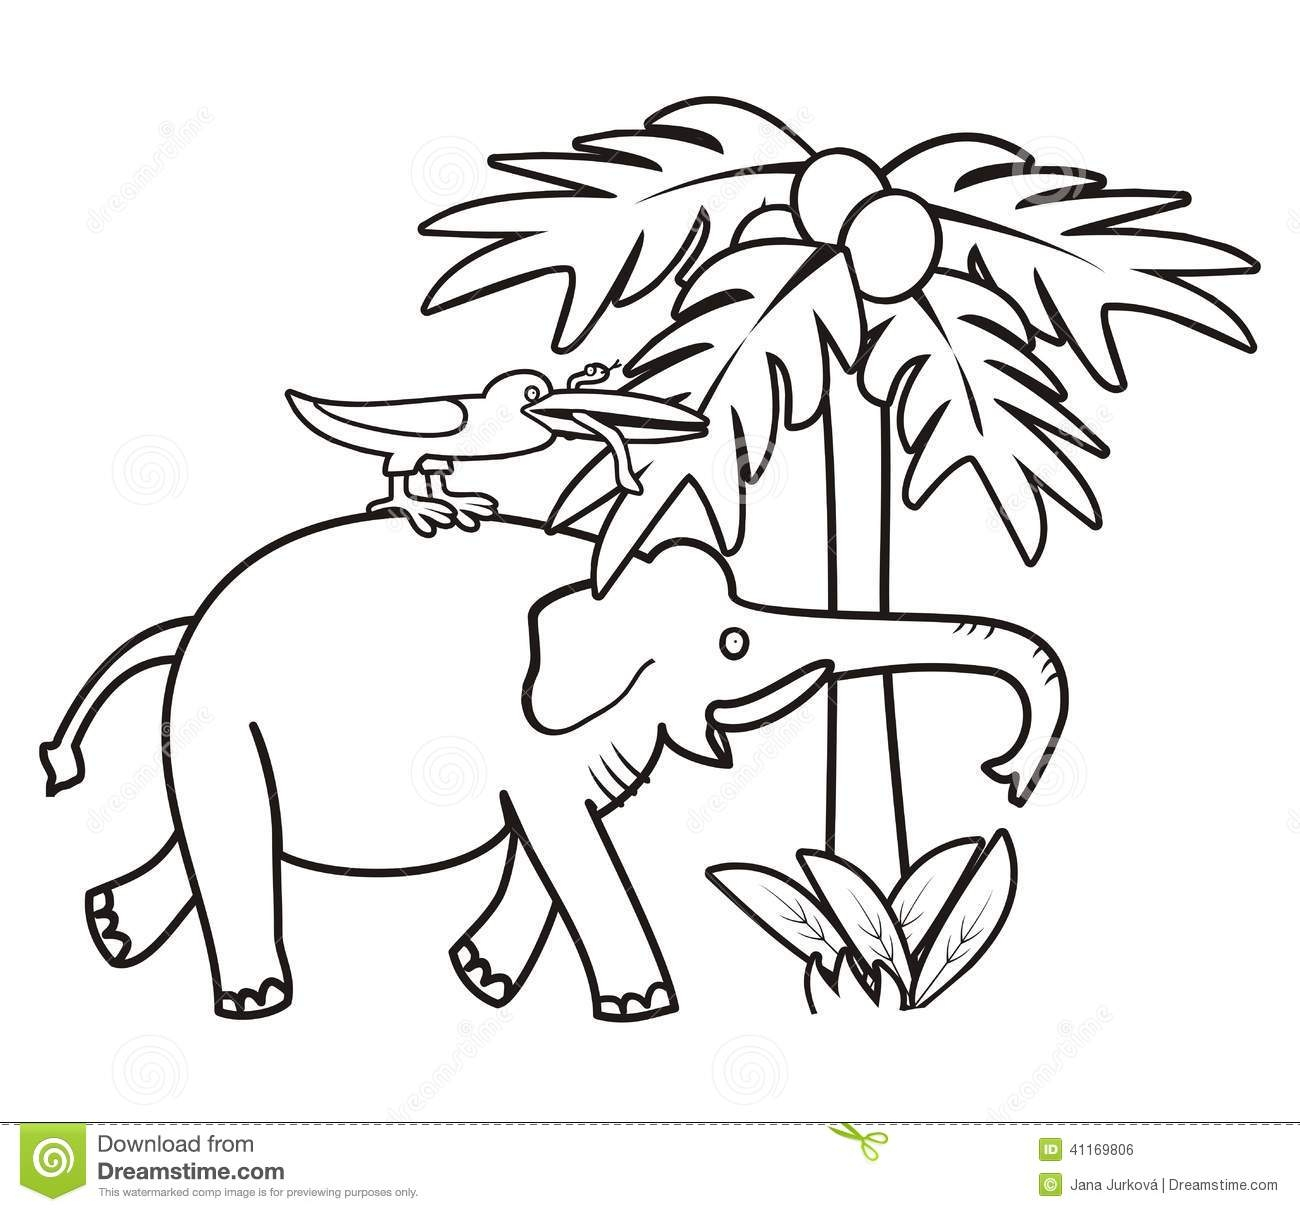 reptile coloring pages - stock illustration elephant bird coloring book kids small snake next to stands palm tree image